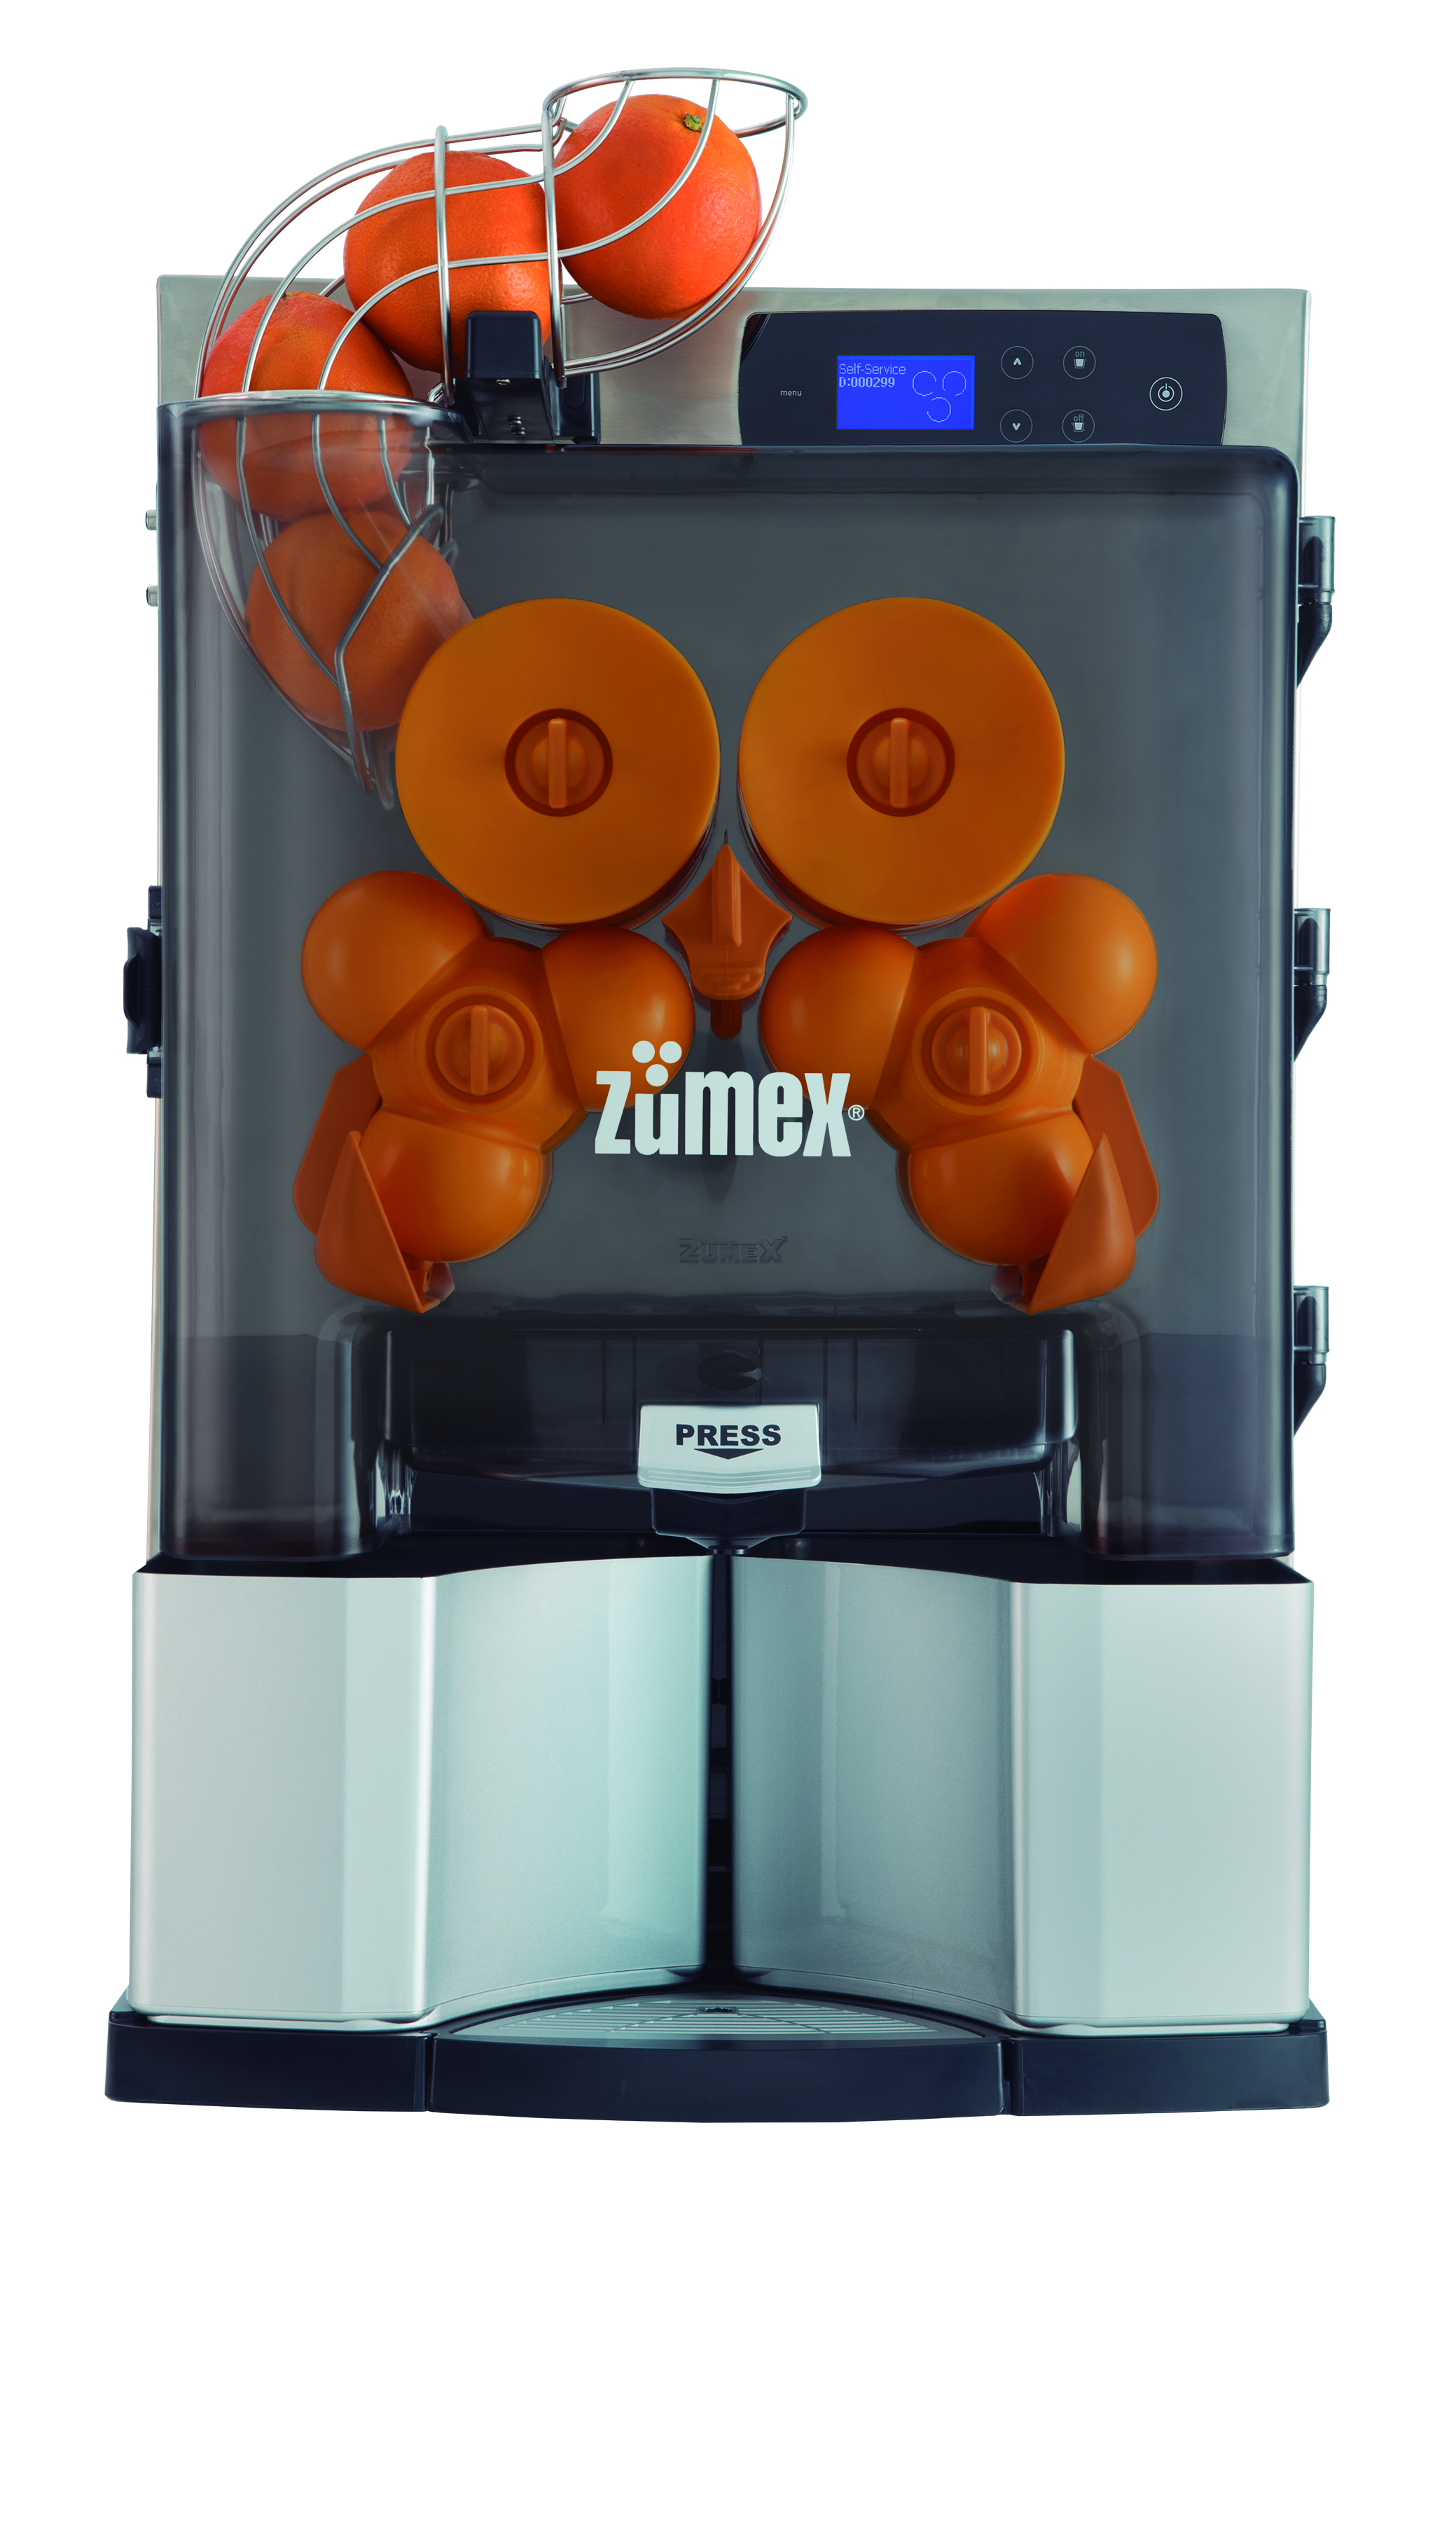 Essential Pro   The ideal commercial juicer for any type of café or bar where simplicity matters